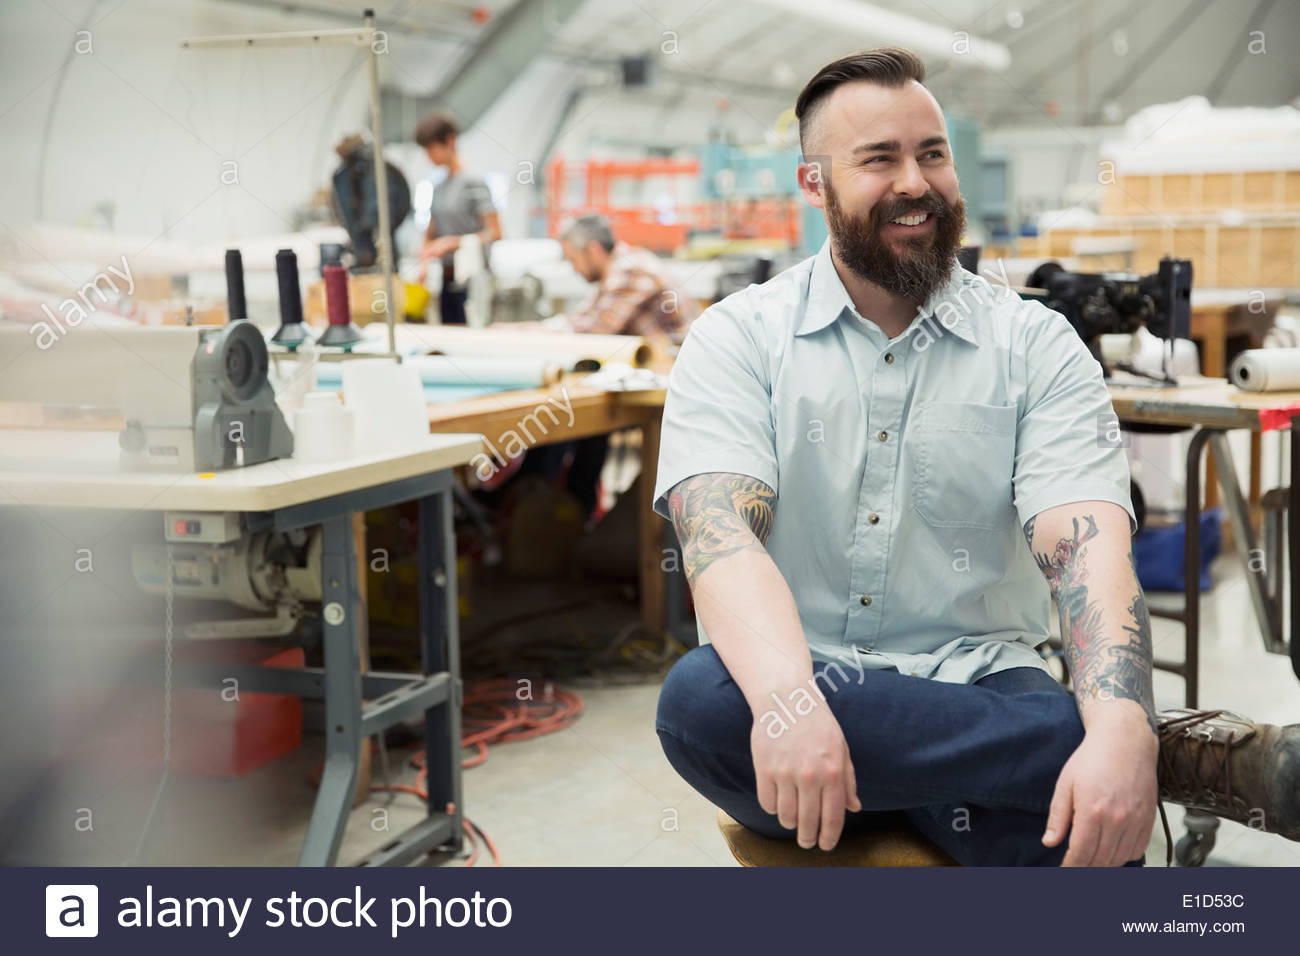 Smiling worker in textile manufacturing plant - Stock Image